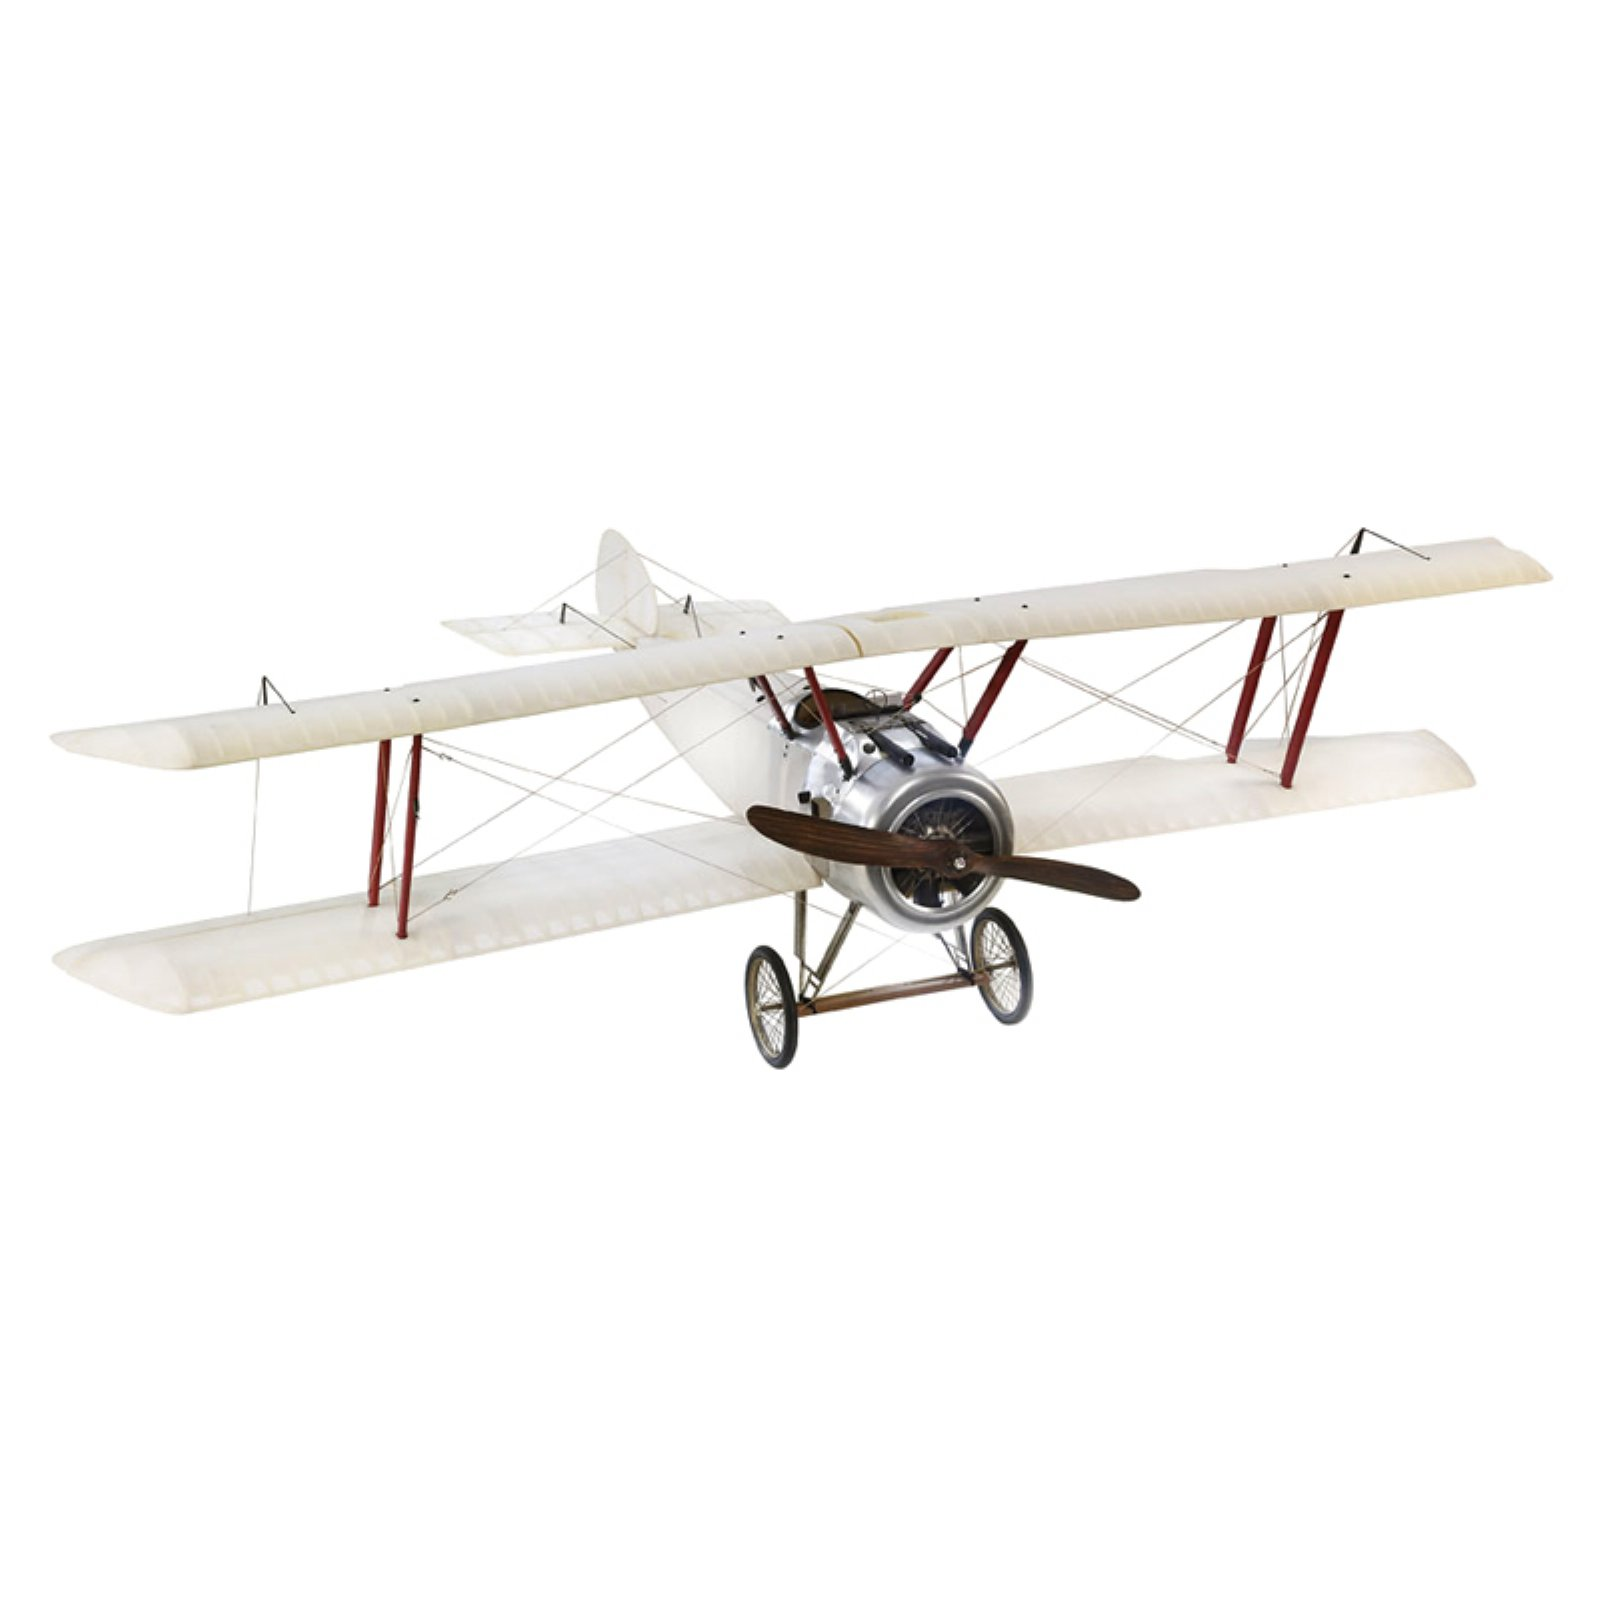 Authentic Models Transparent Sopwith Camel Model Airplane Large by Authentic Models